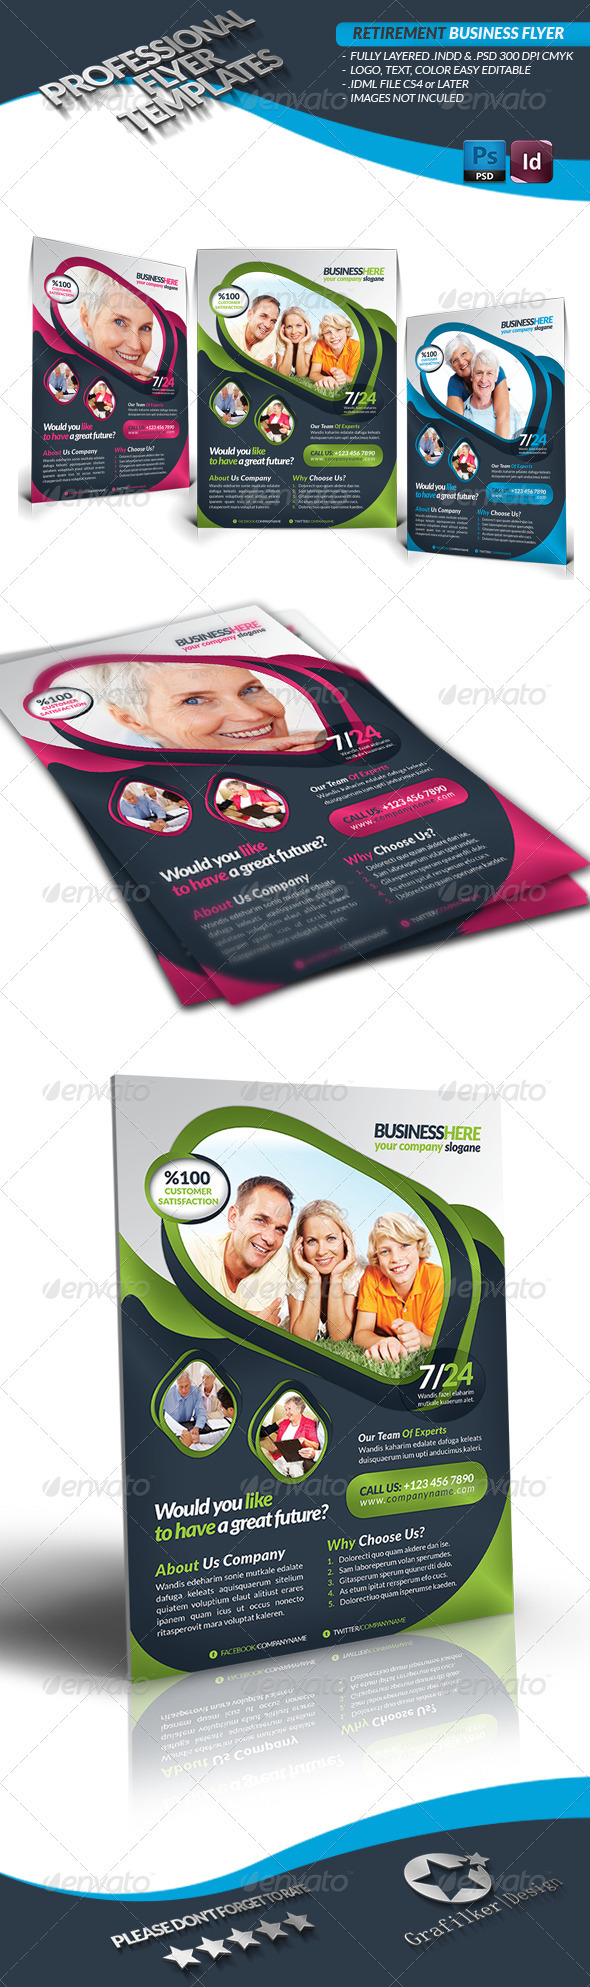 GraphicRiver Retirement Business Flyer 3519681